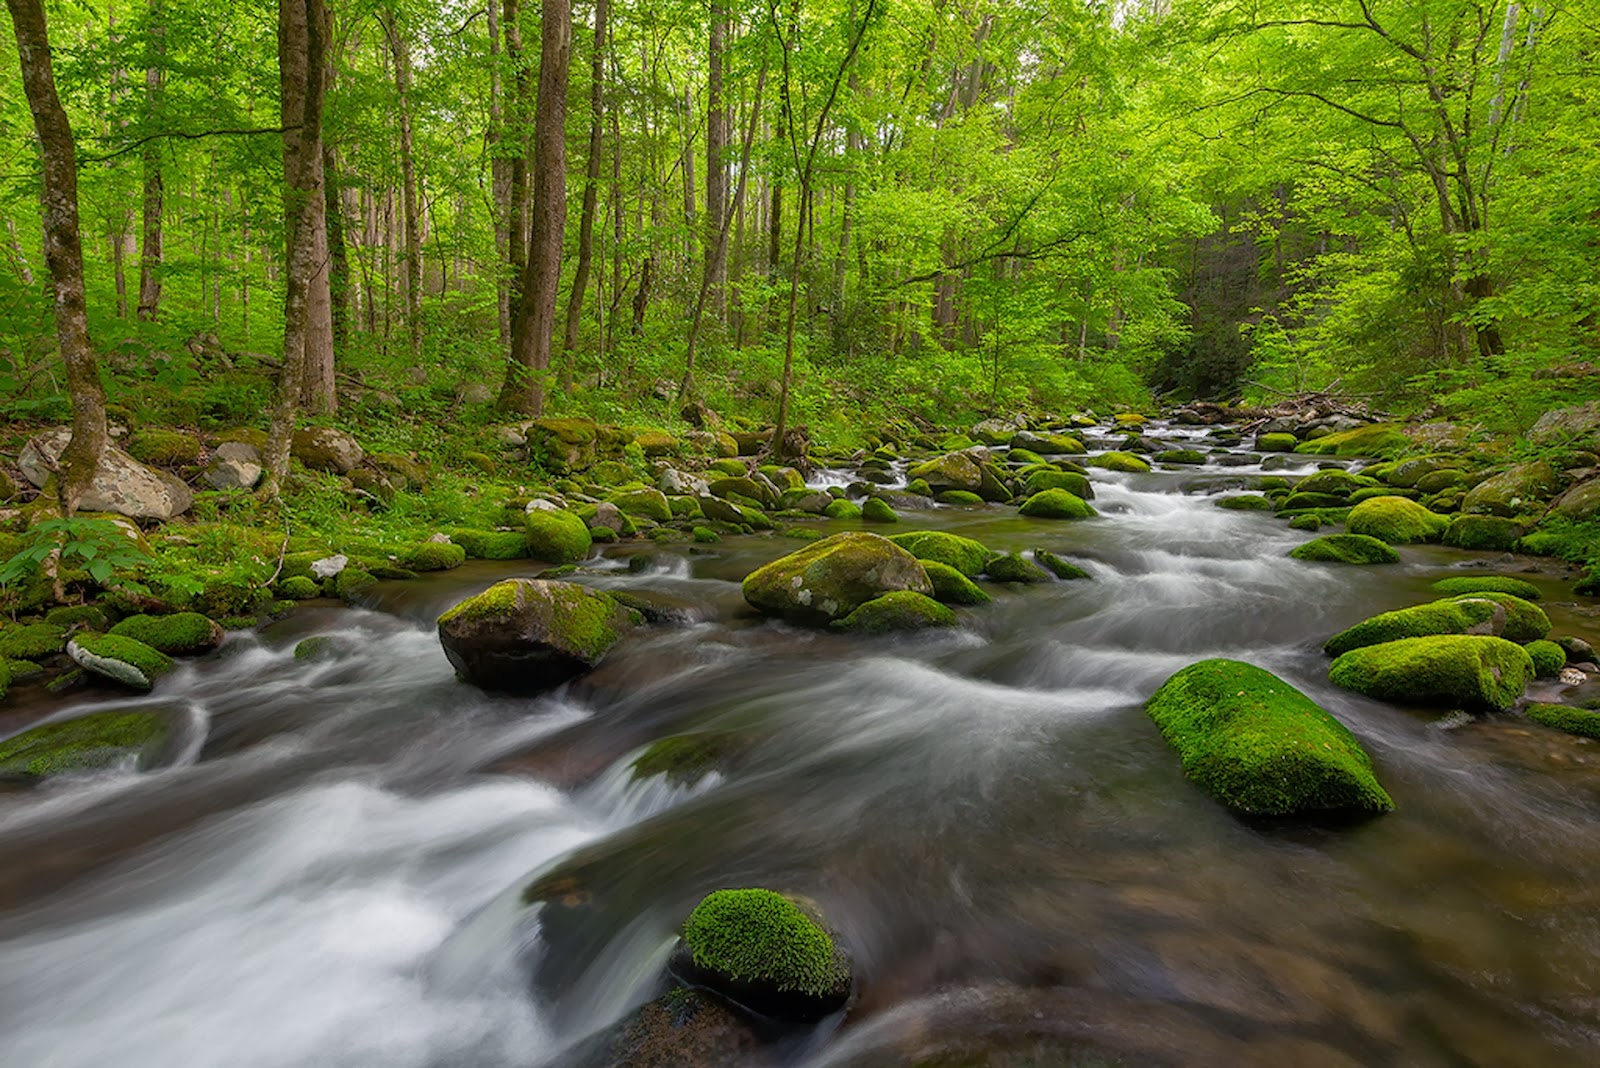 Full hd green nature waterfall images wallpapers for - Green nature wallpaper full hd ...